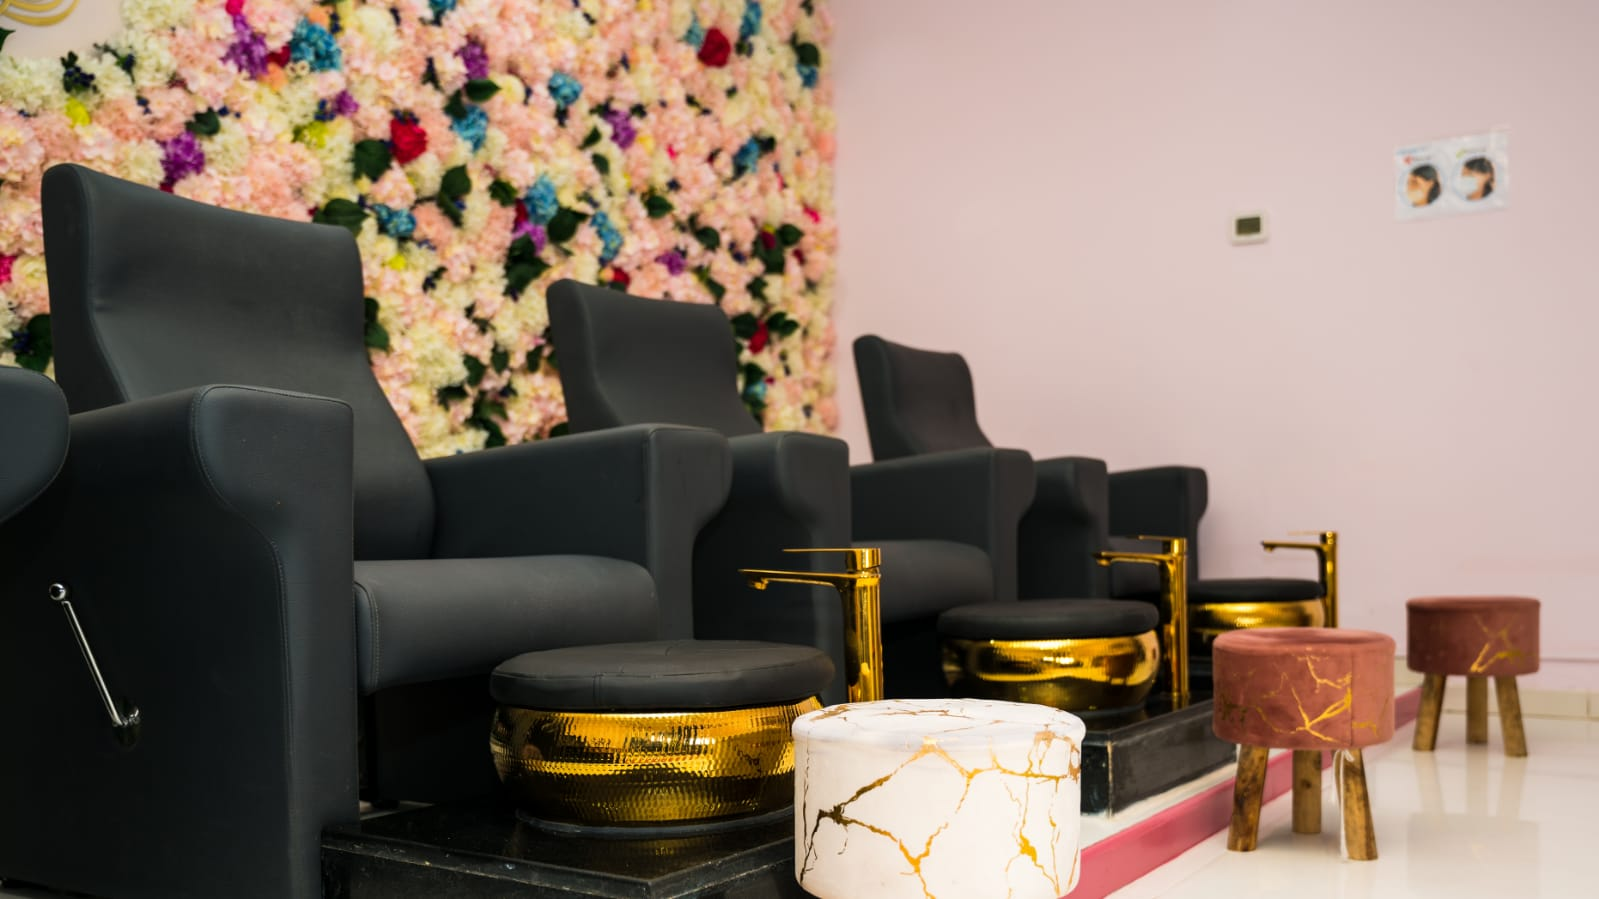 Well-established_spa_and_beauty_salon_in_the_heart_of_Dubai_10102021132145